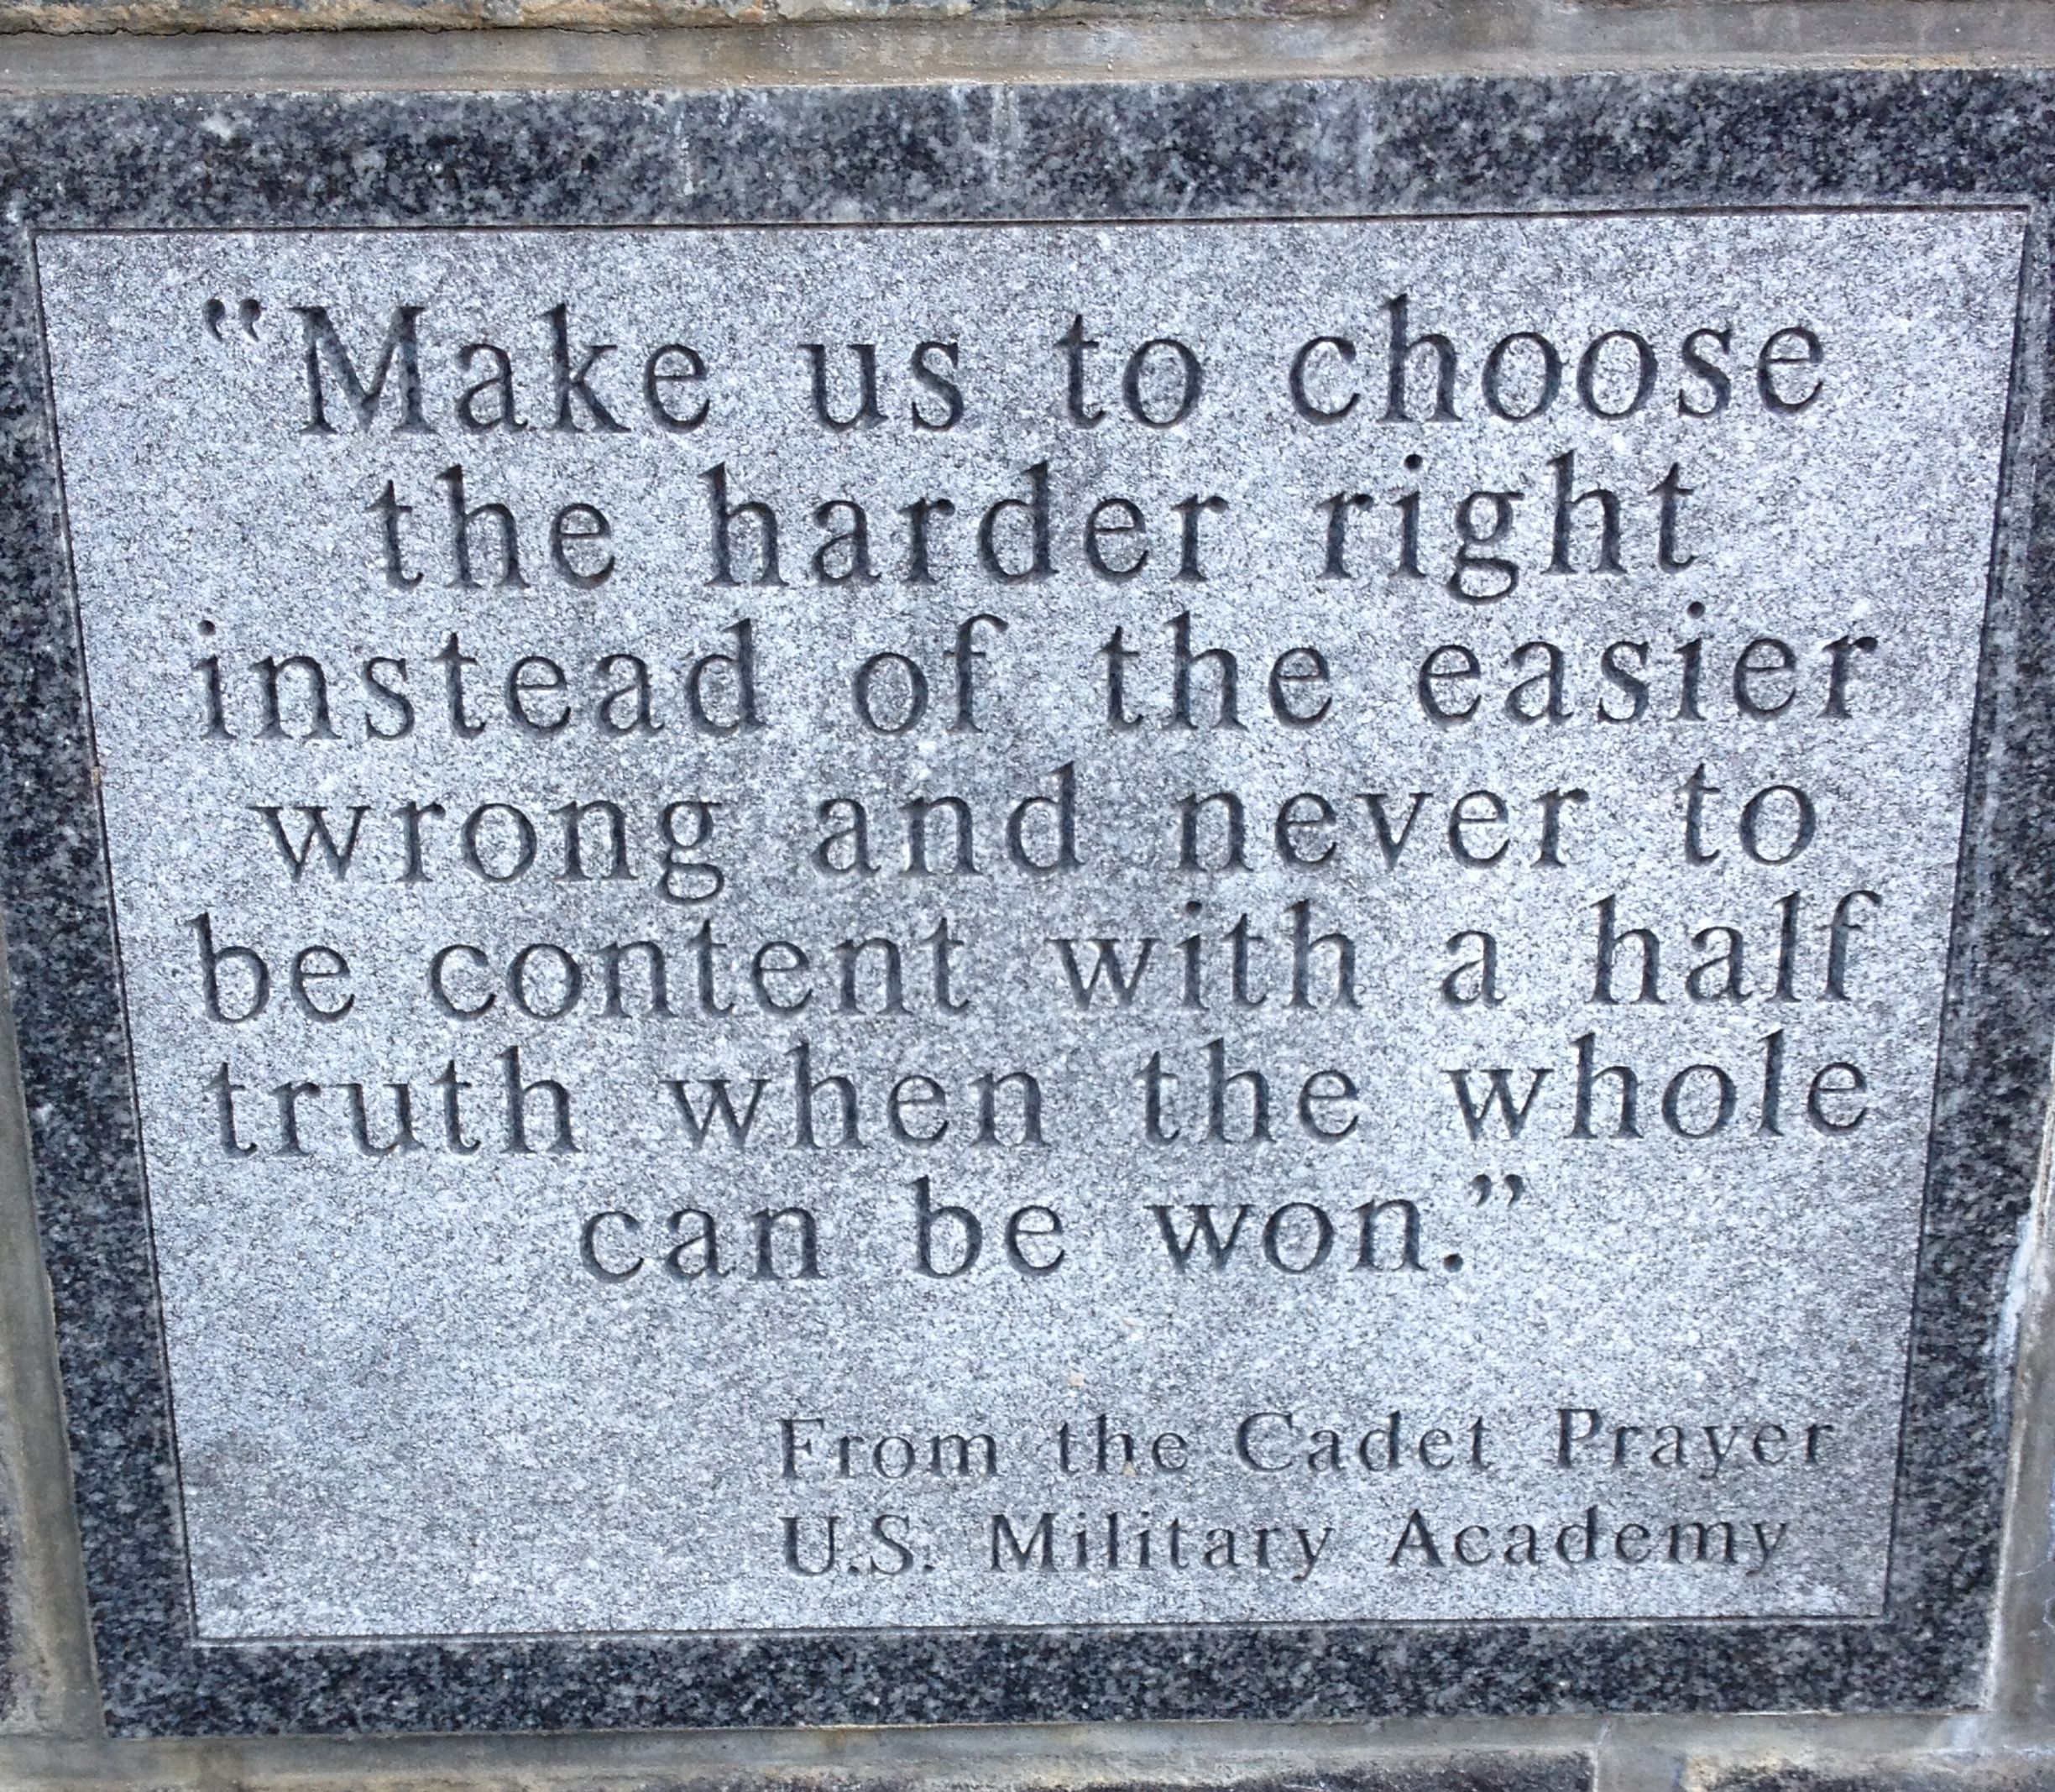 west point cadet prayer make us to choose the harder right west point cadet prayer make us to choose the harder right instead of the